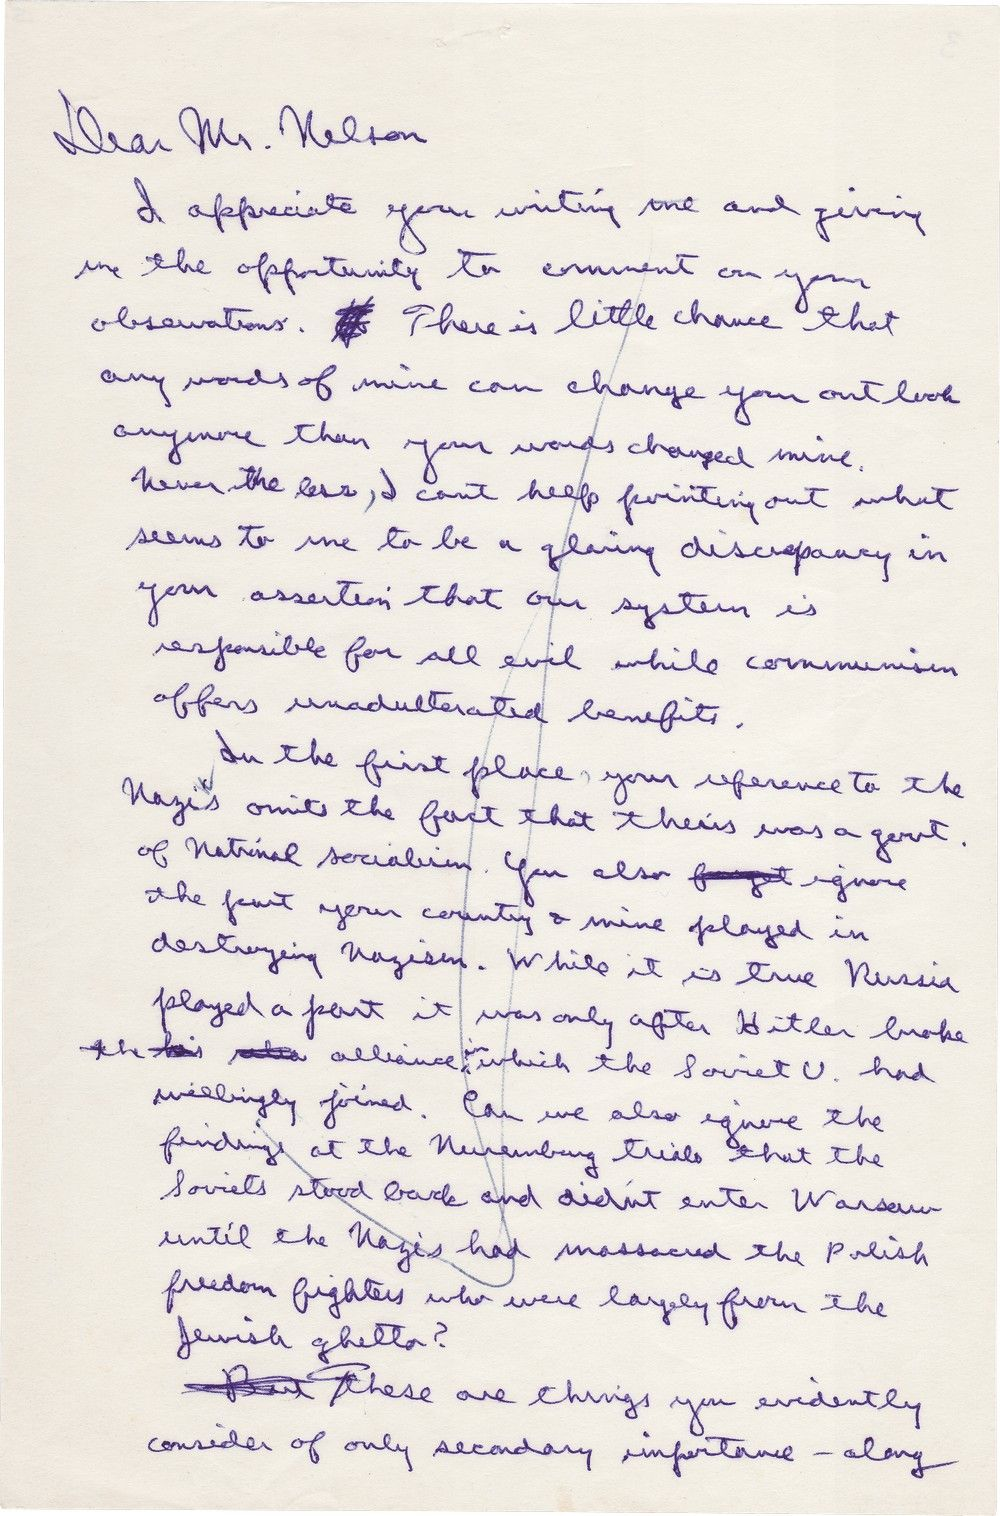 Ronald Reagan Writes About How Jews from the Warsaw Ghetto Joined the Polish Uprising Against the Nazis